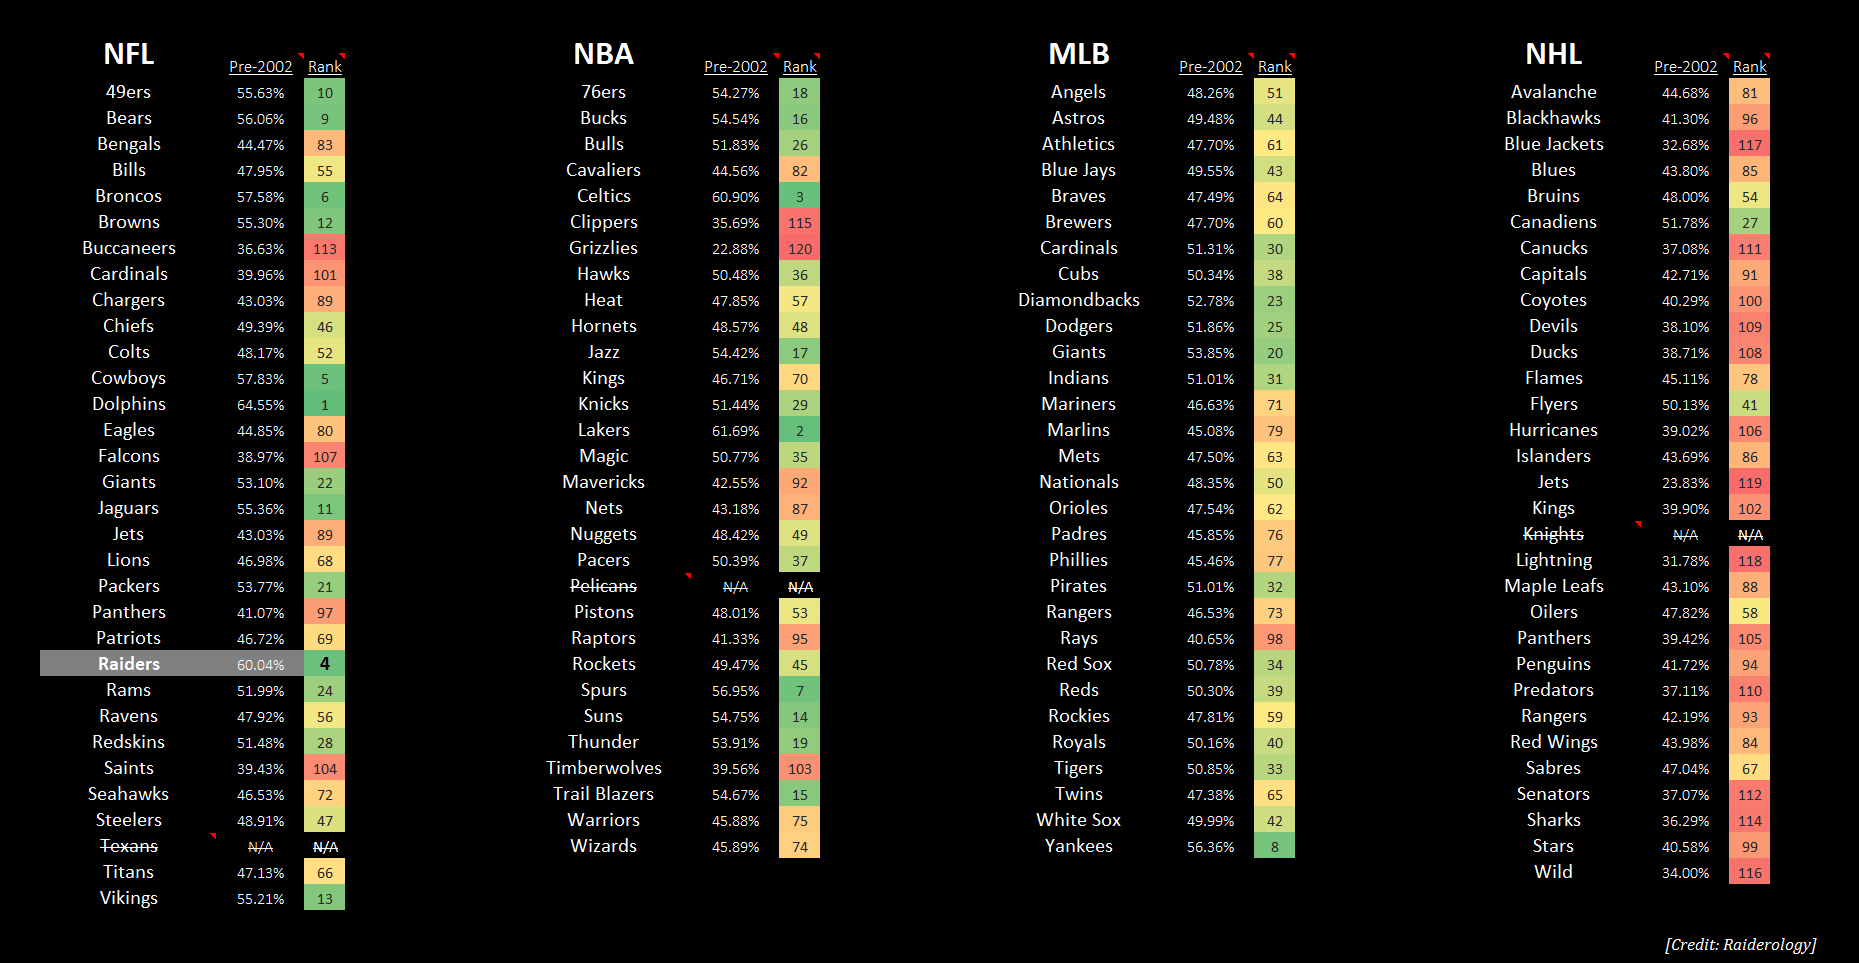 Raiders Winning Percentage BEFORE Jon Gruden Left in 2002 (compared to ALL Major Sports Leagues)